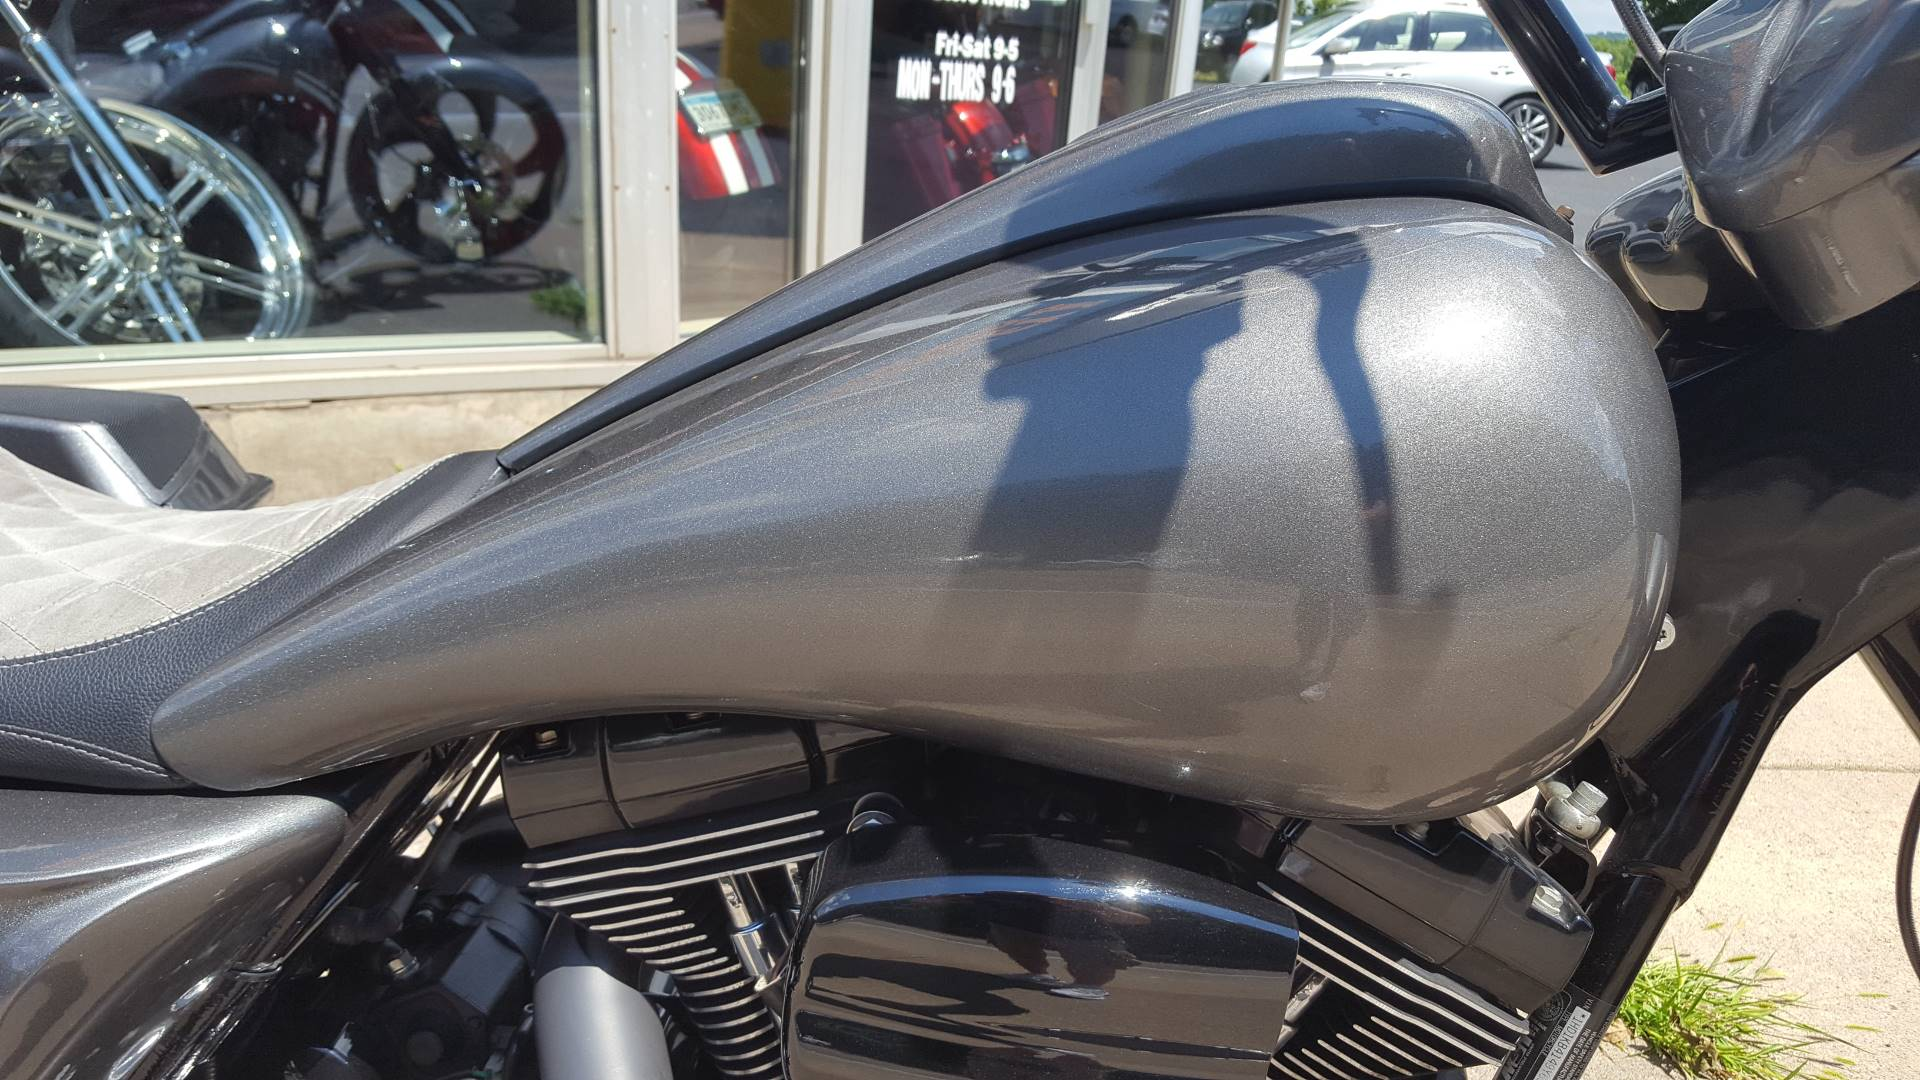 2009 Harley-Davidson Road King® in South Saint Paul, Minnesota